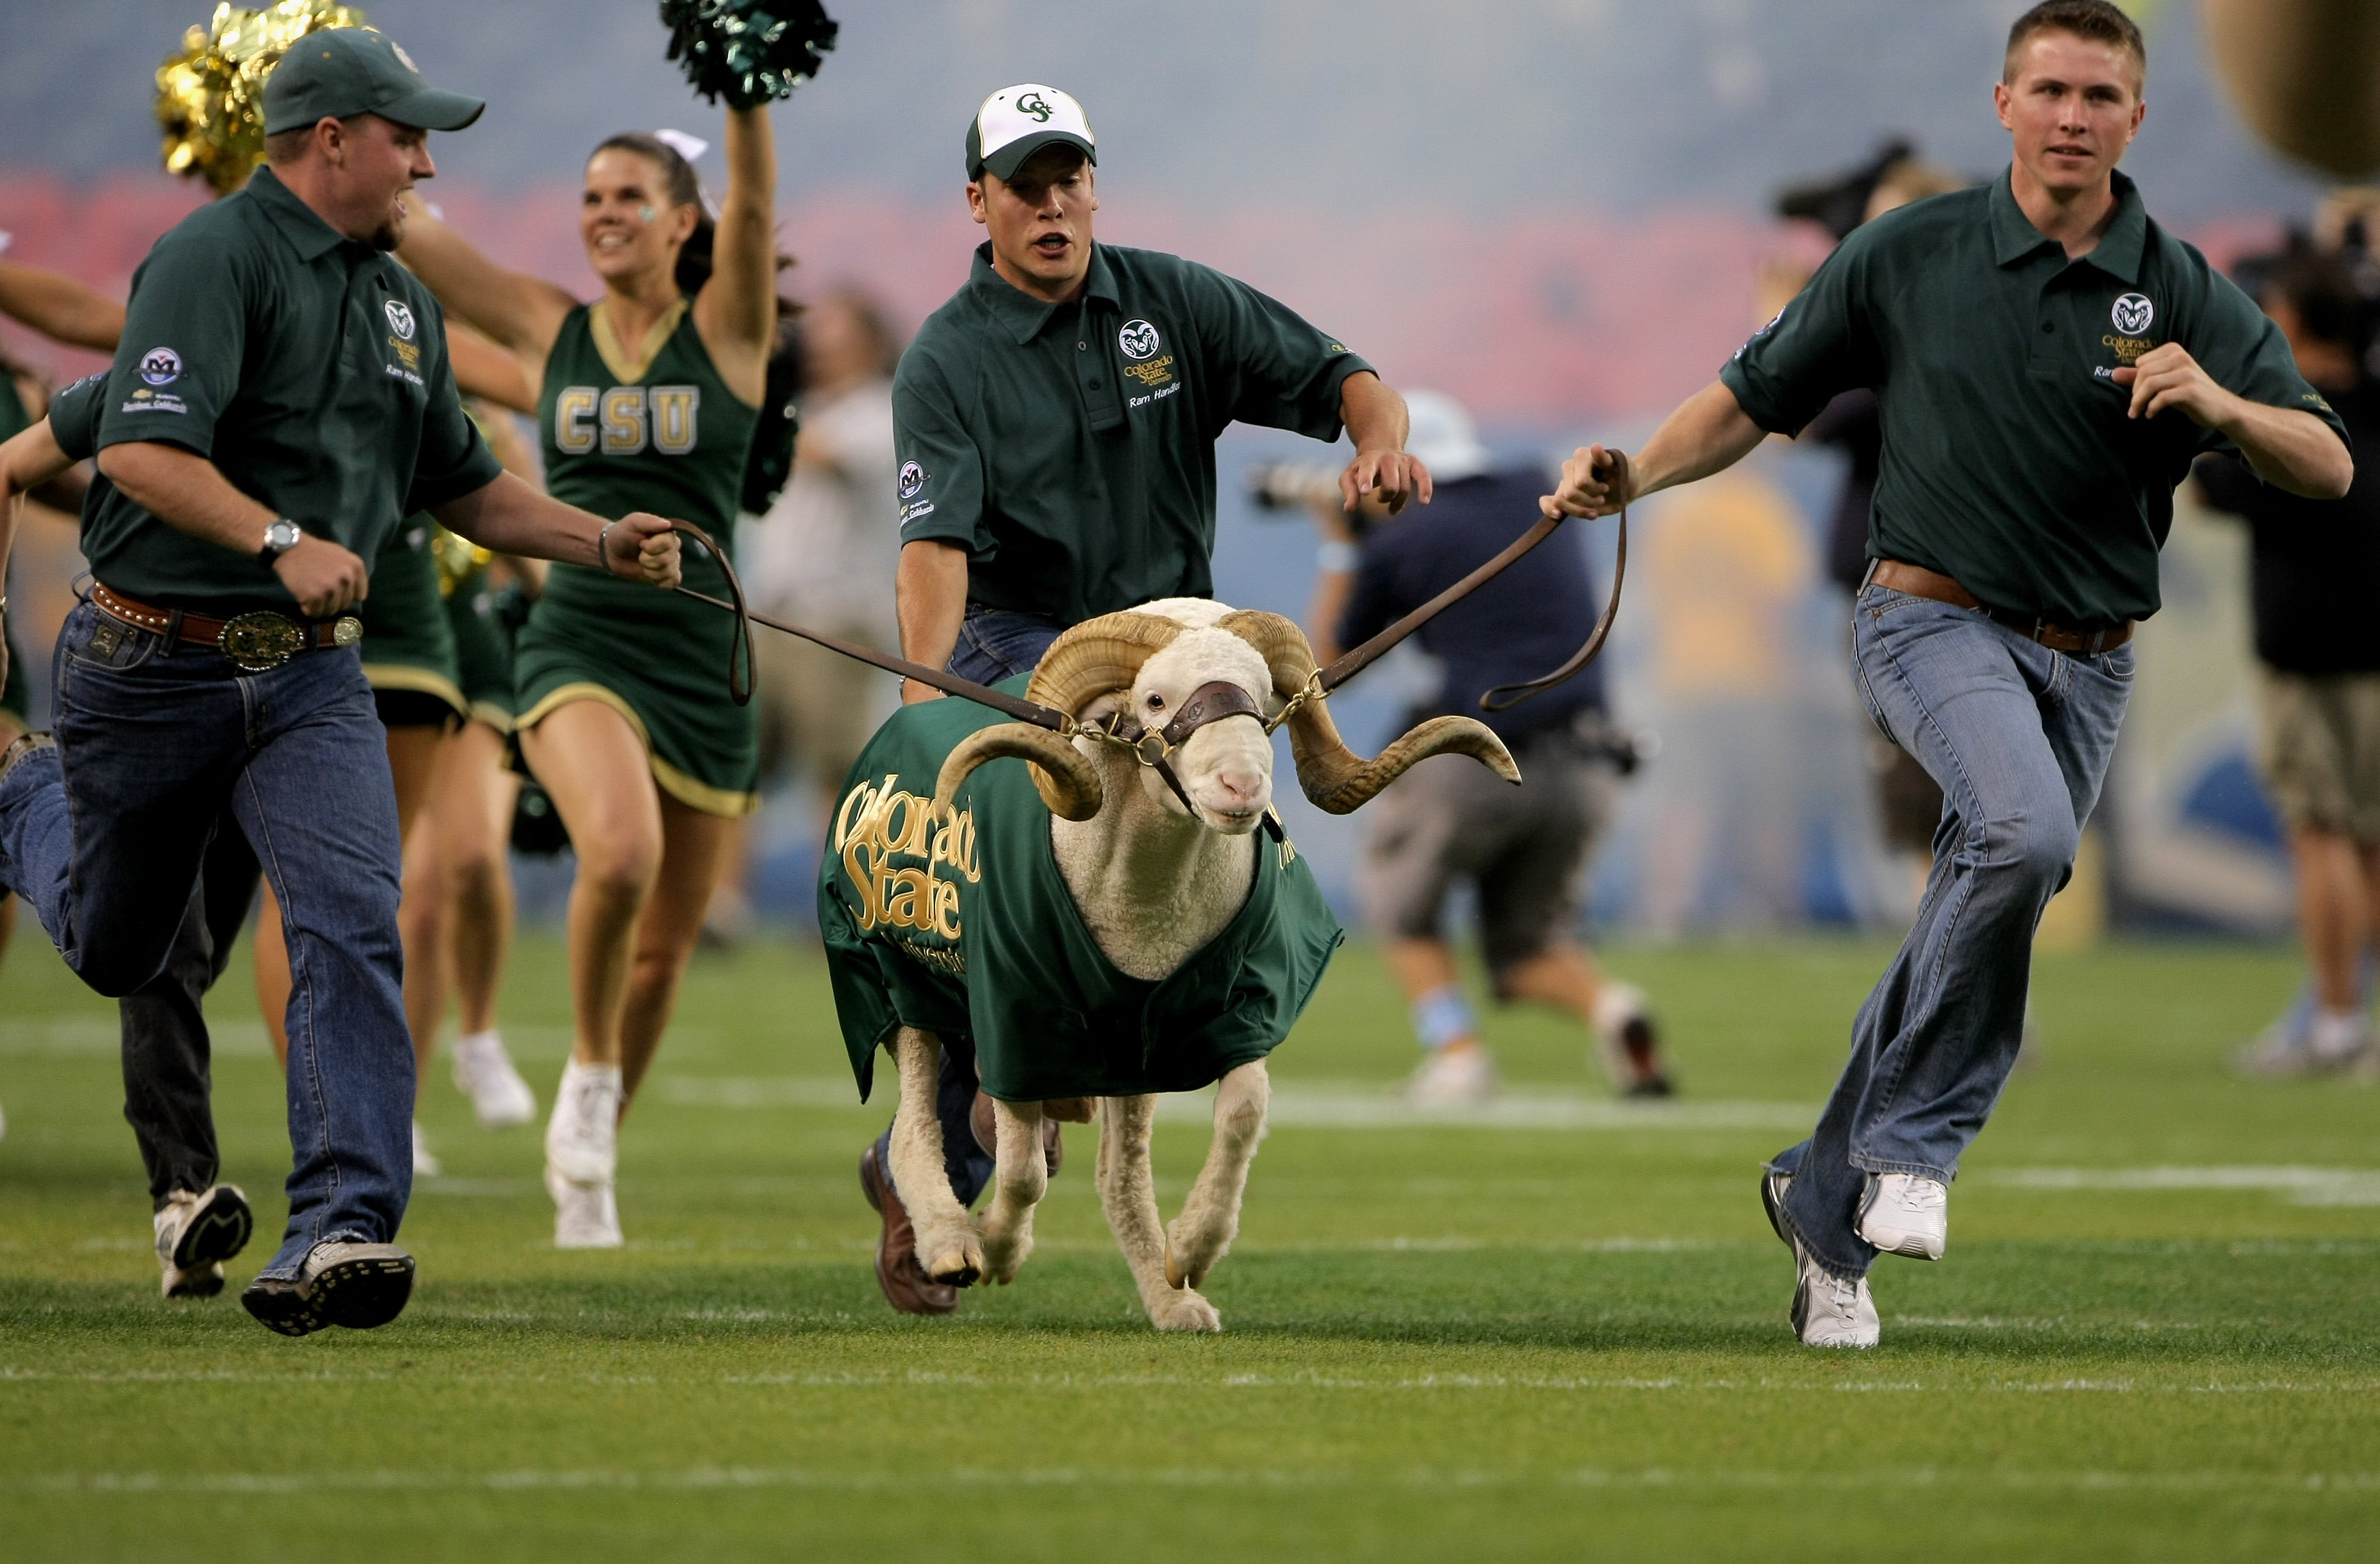 DENVER - AUGUST 31:  The Colorado State University Rams CAM the Ram is escorted onto the field prior to facing the University of Colorado Buffaloes at Invesco Field at Mile High on August 31, 2008 in Denver, Colorado. Colorado defeated Colorado State 38-1